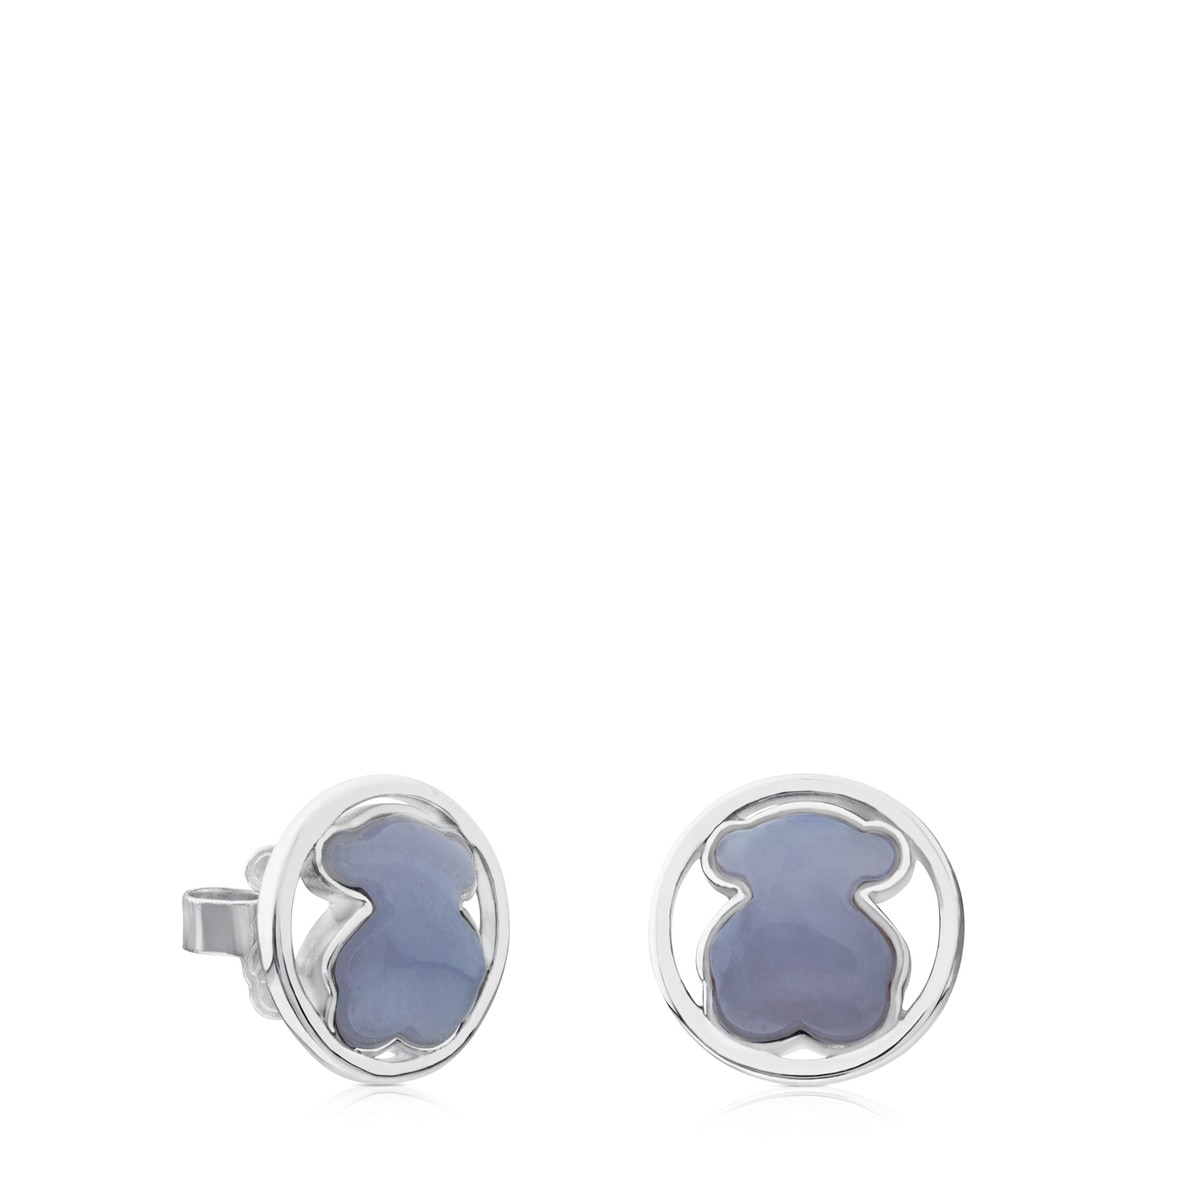 Silver Camille Earrings with Chalcedony